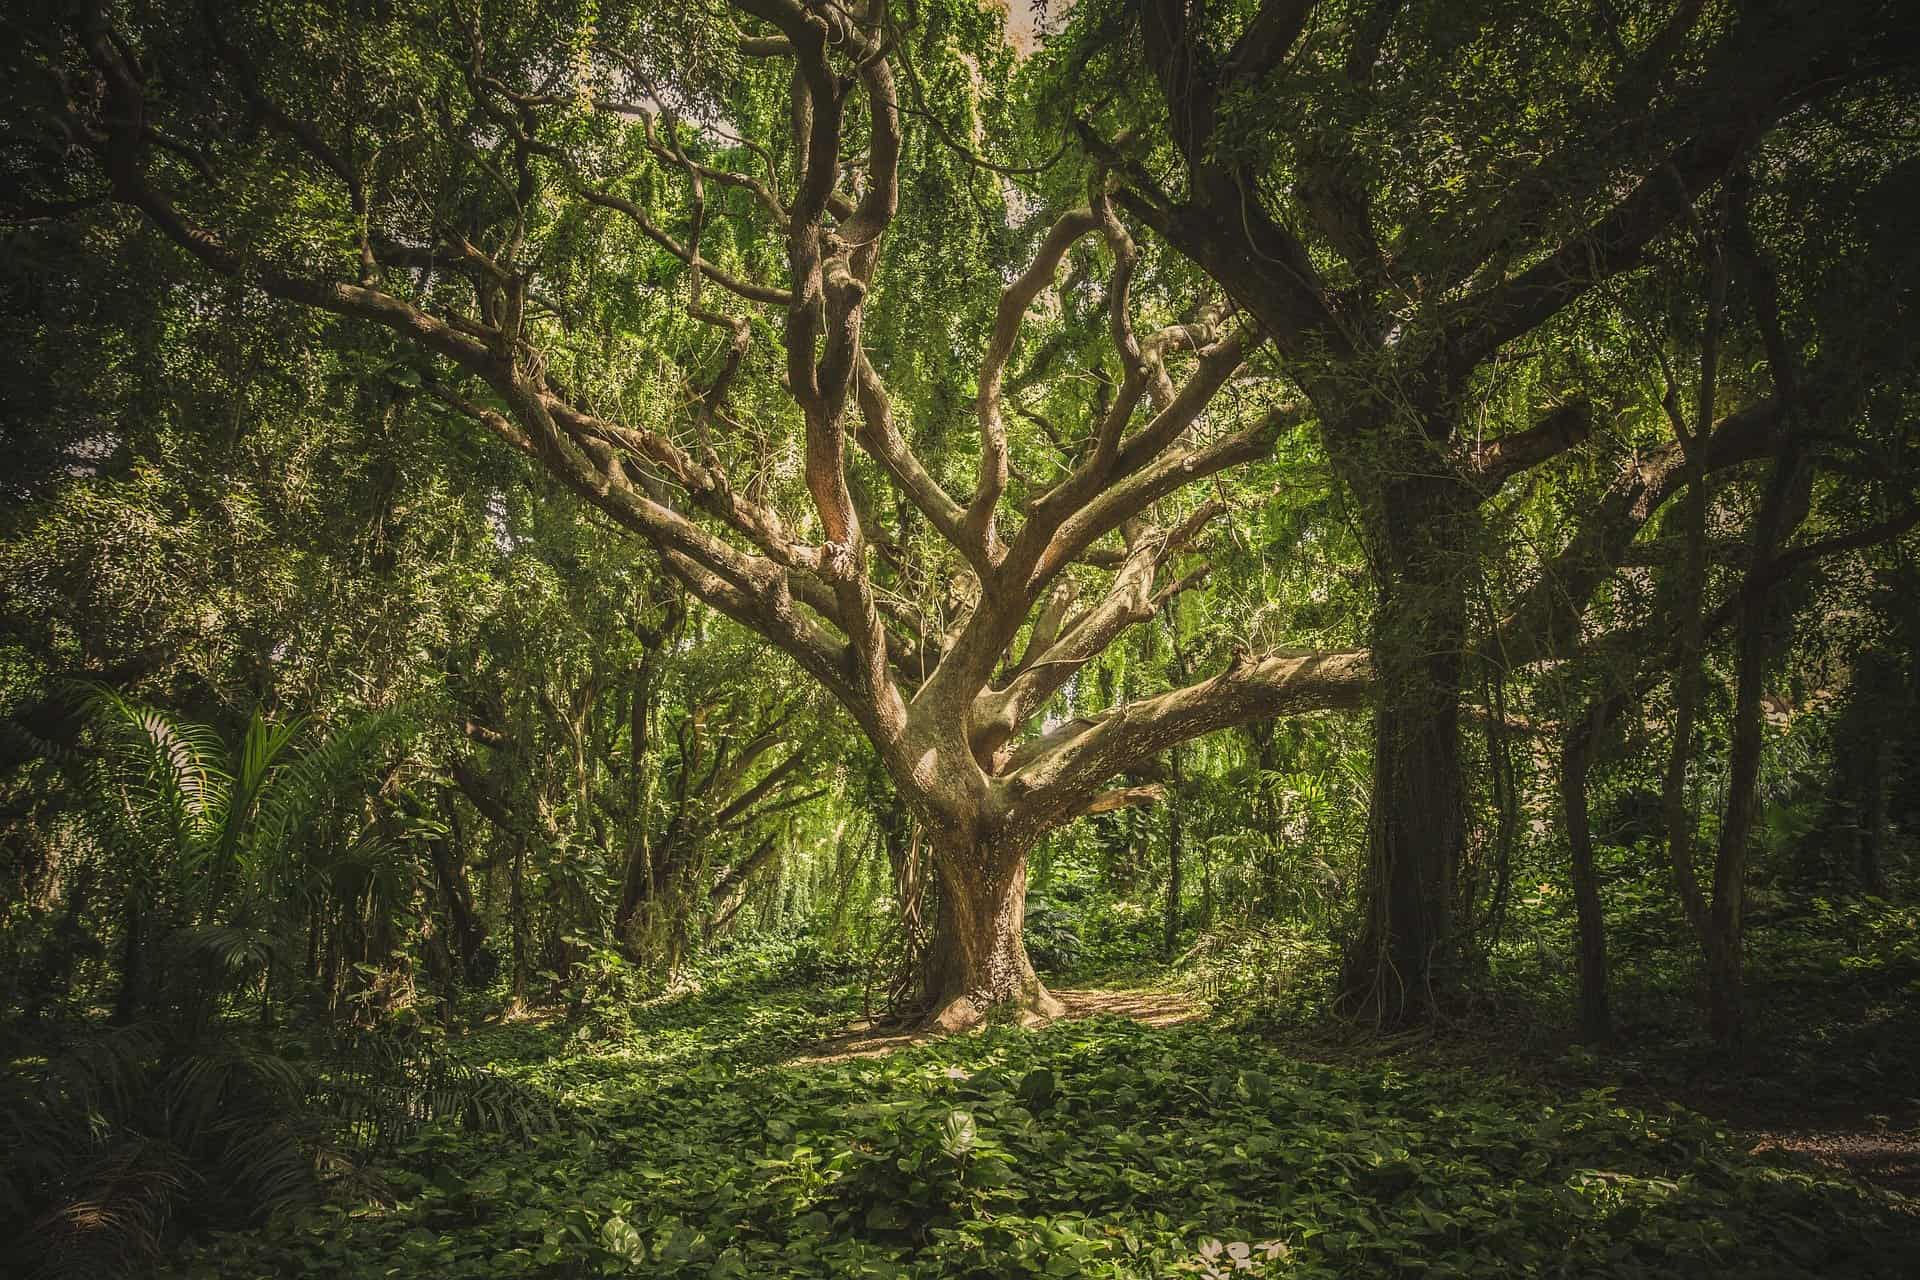 Large tree in wood